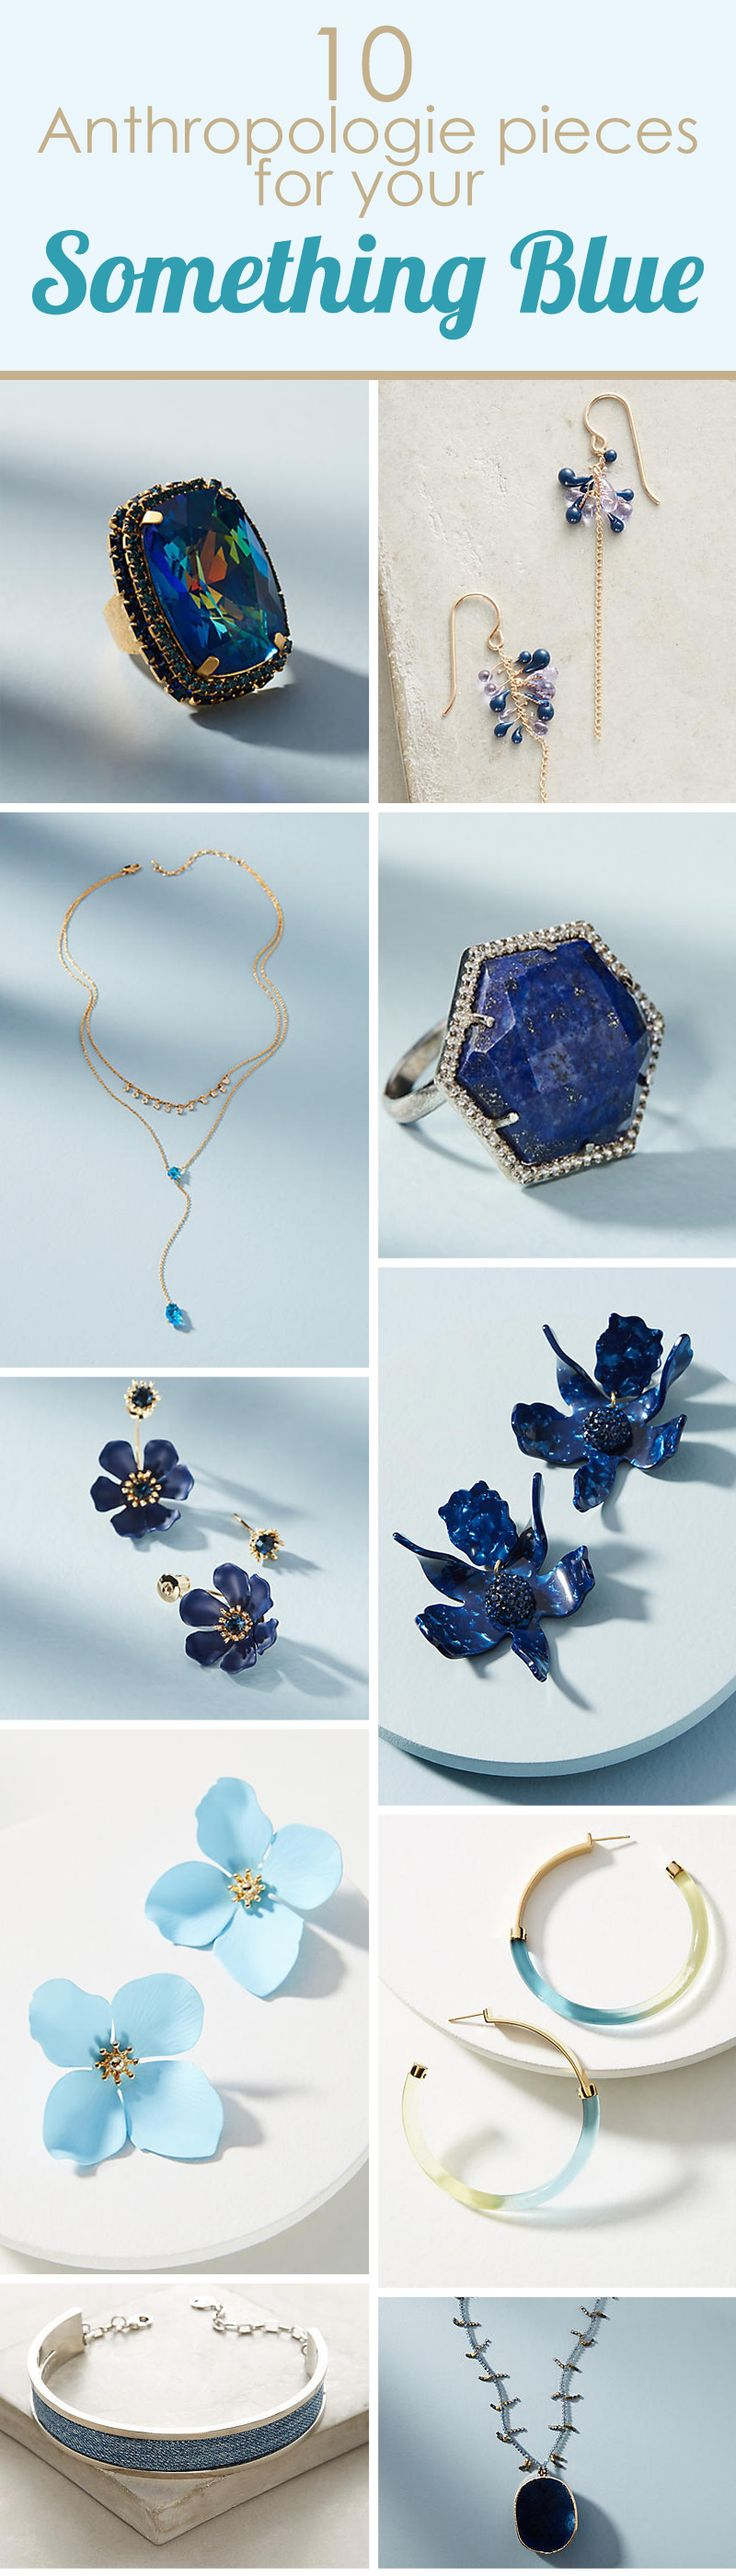 10 Anthropologie pieces for your something blue. Are you looking for the perfect item to complete your wedding tradition? Check out this great collection of timeless pieces. Something old, new, borrowed and BLUE - and a sixpence in her shoe! Shopstyle provides a great collection of items for your wardrobe. Check them out now!